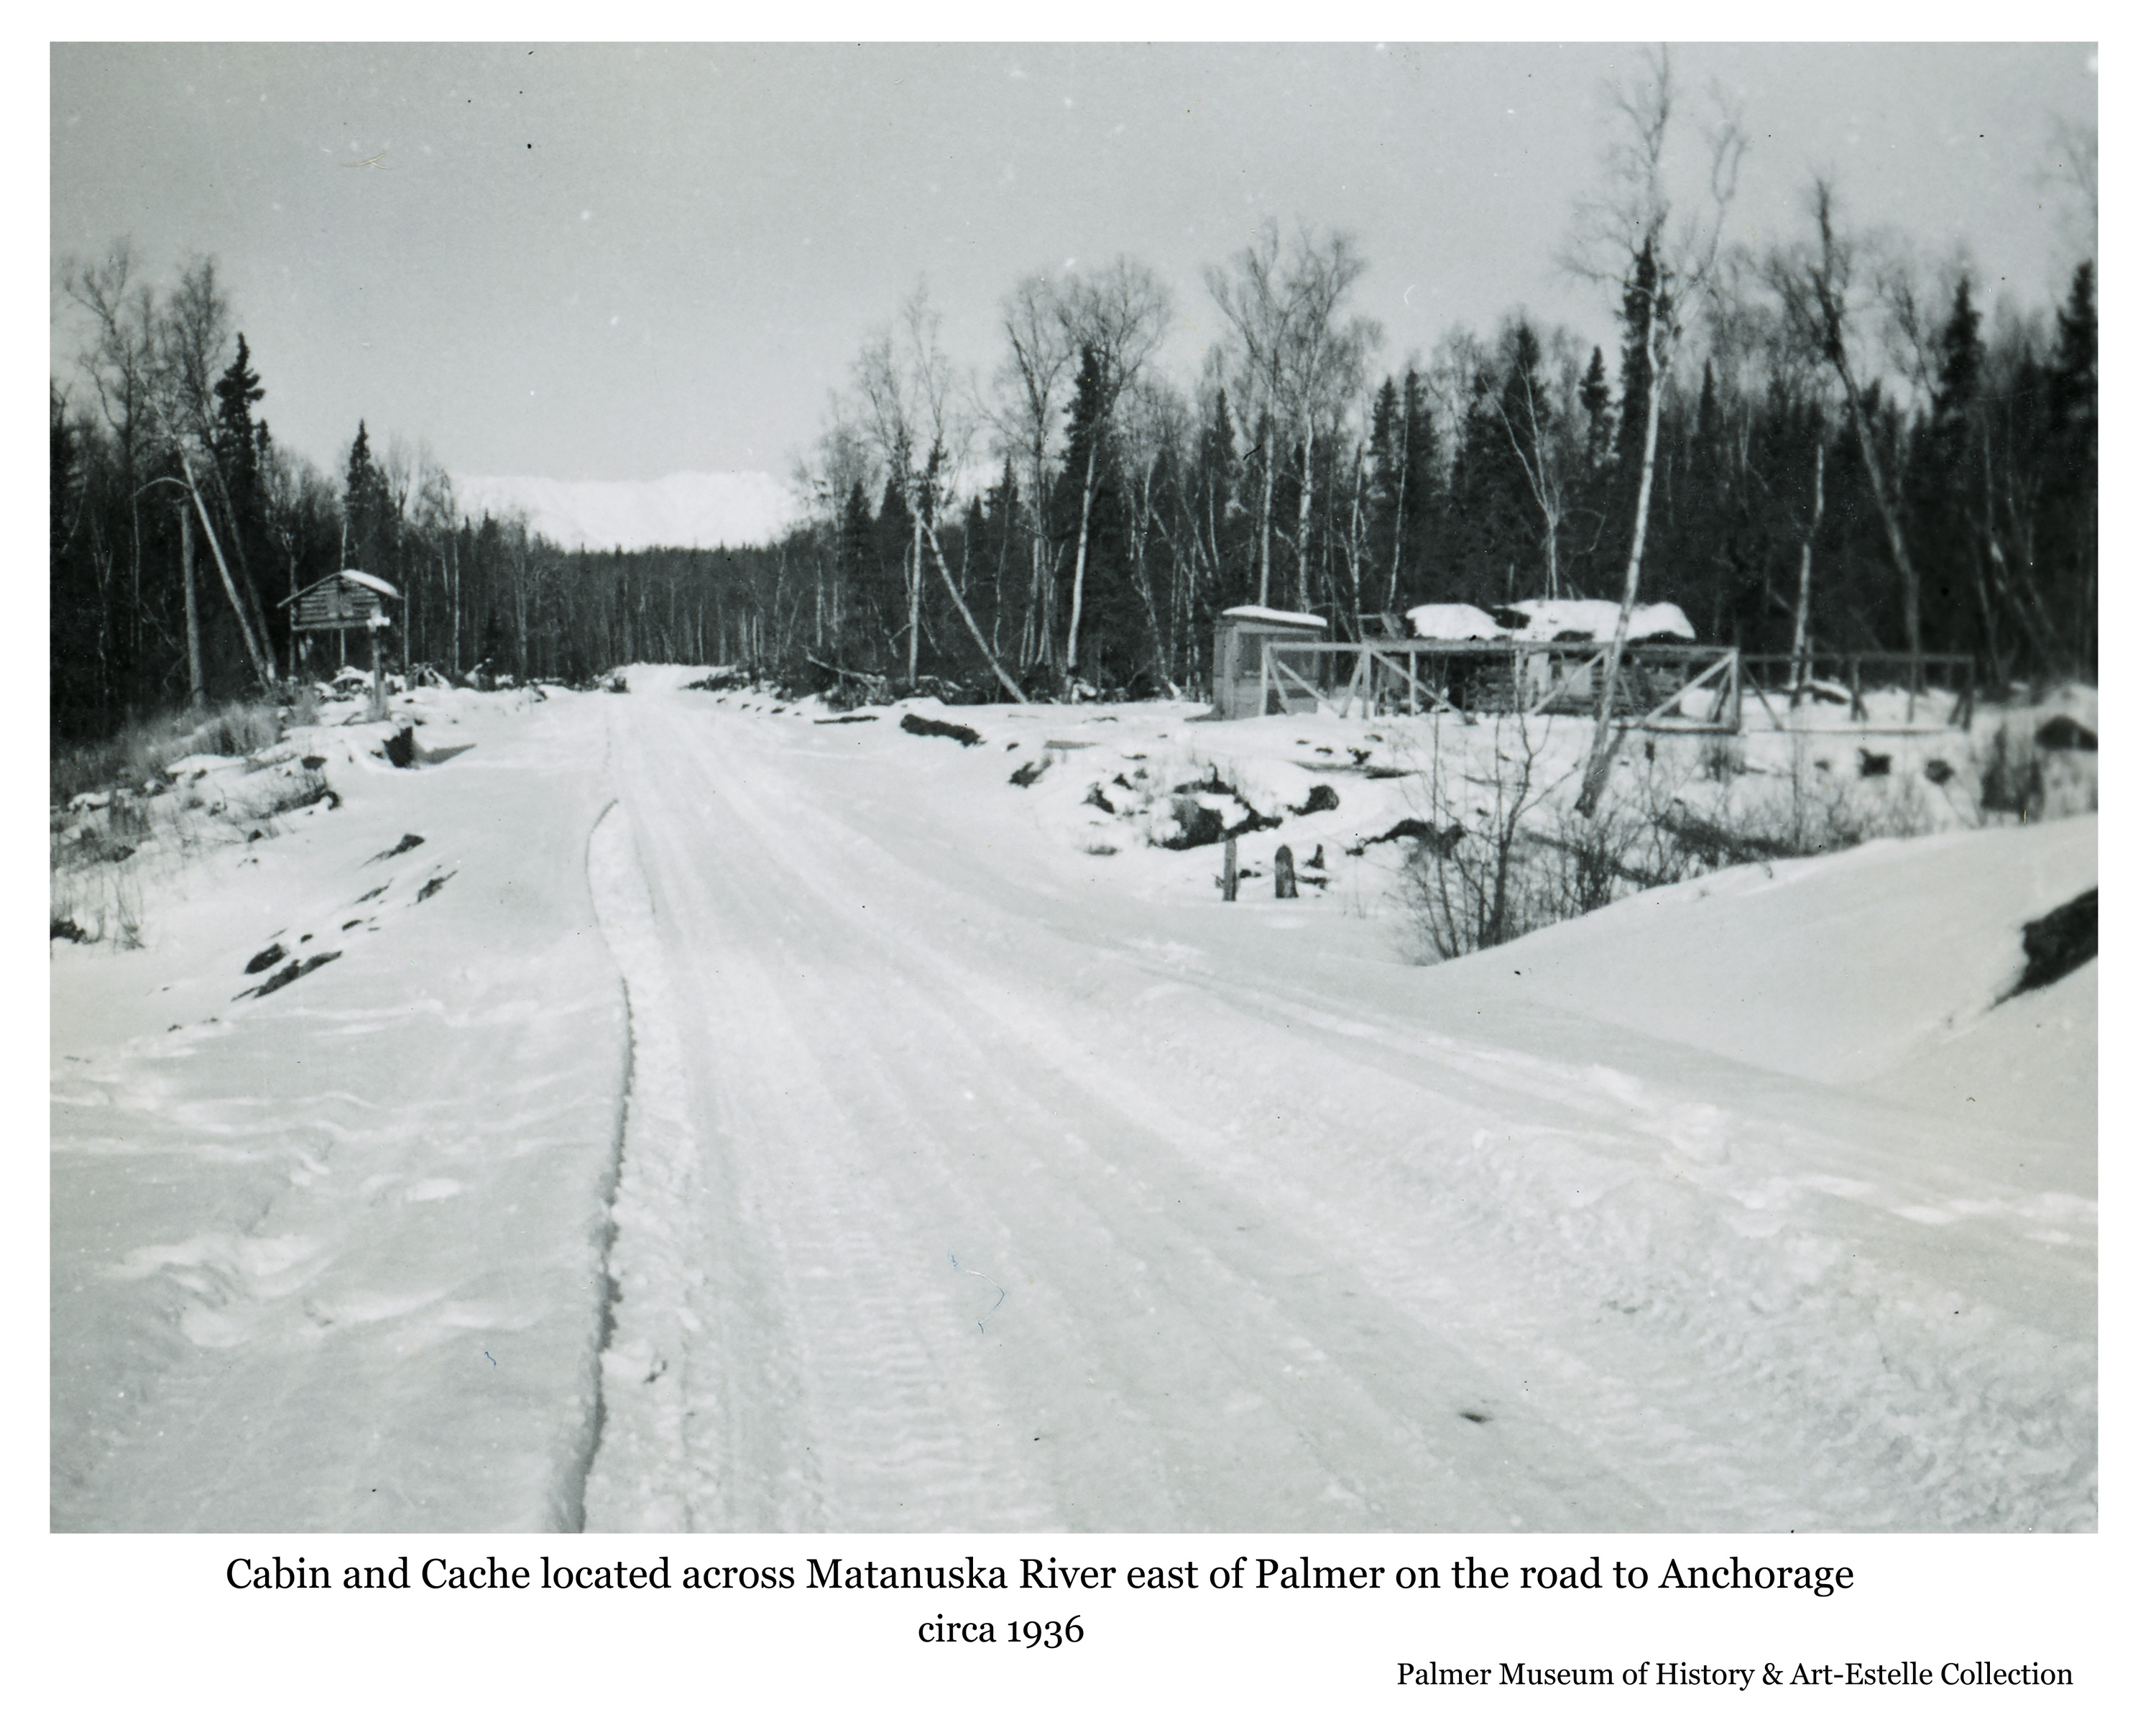 Image is a winter view looking north along the snow-covered Palmer to Anchorage road about a mile east of the Matanuska River bridge.  Shown is a log cabin, fox pens, and another small structure on the north side of the road and a cache on the south side.  Heavy birch and spruce forest is the backdrop of the clearing with snow-covered Talkeetna Mountains visible in background beyond the cleared roadway.